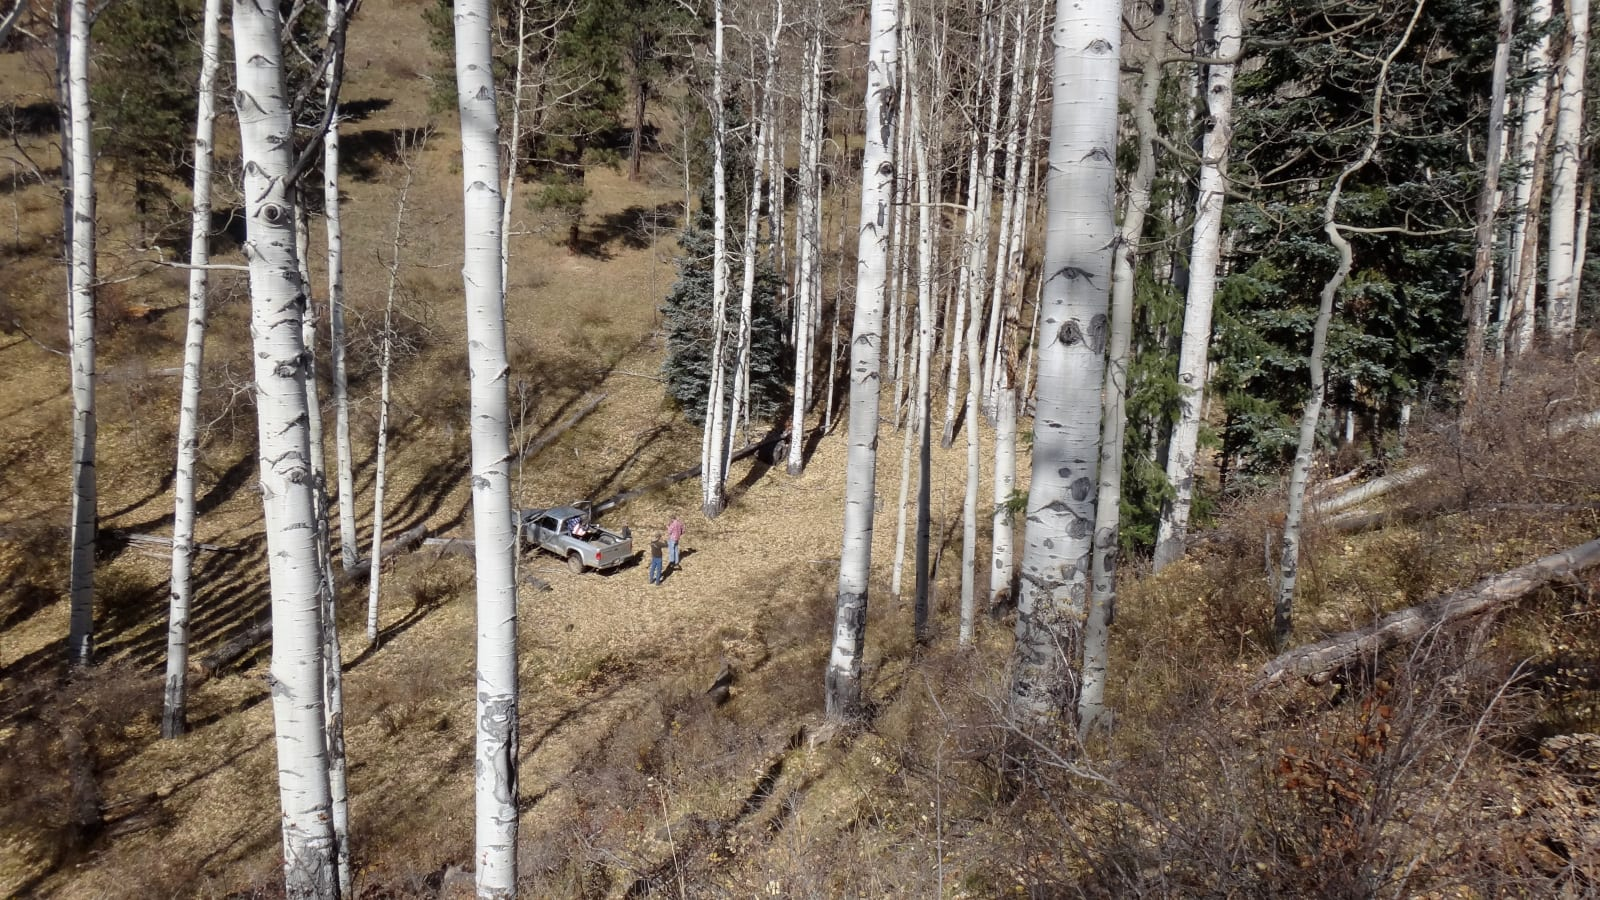 Big Game Hunting Colorado Looking Down On Truck in Forest